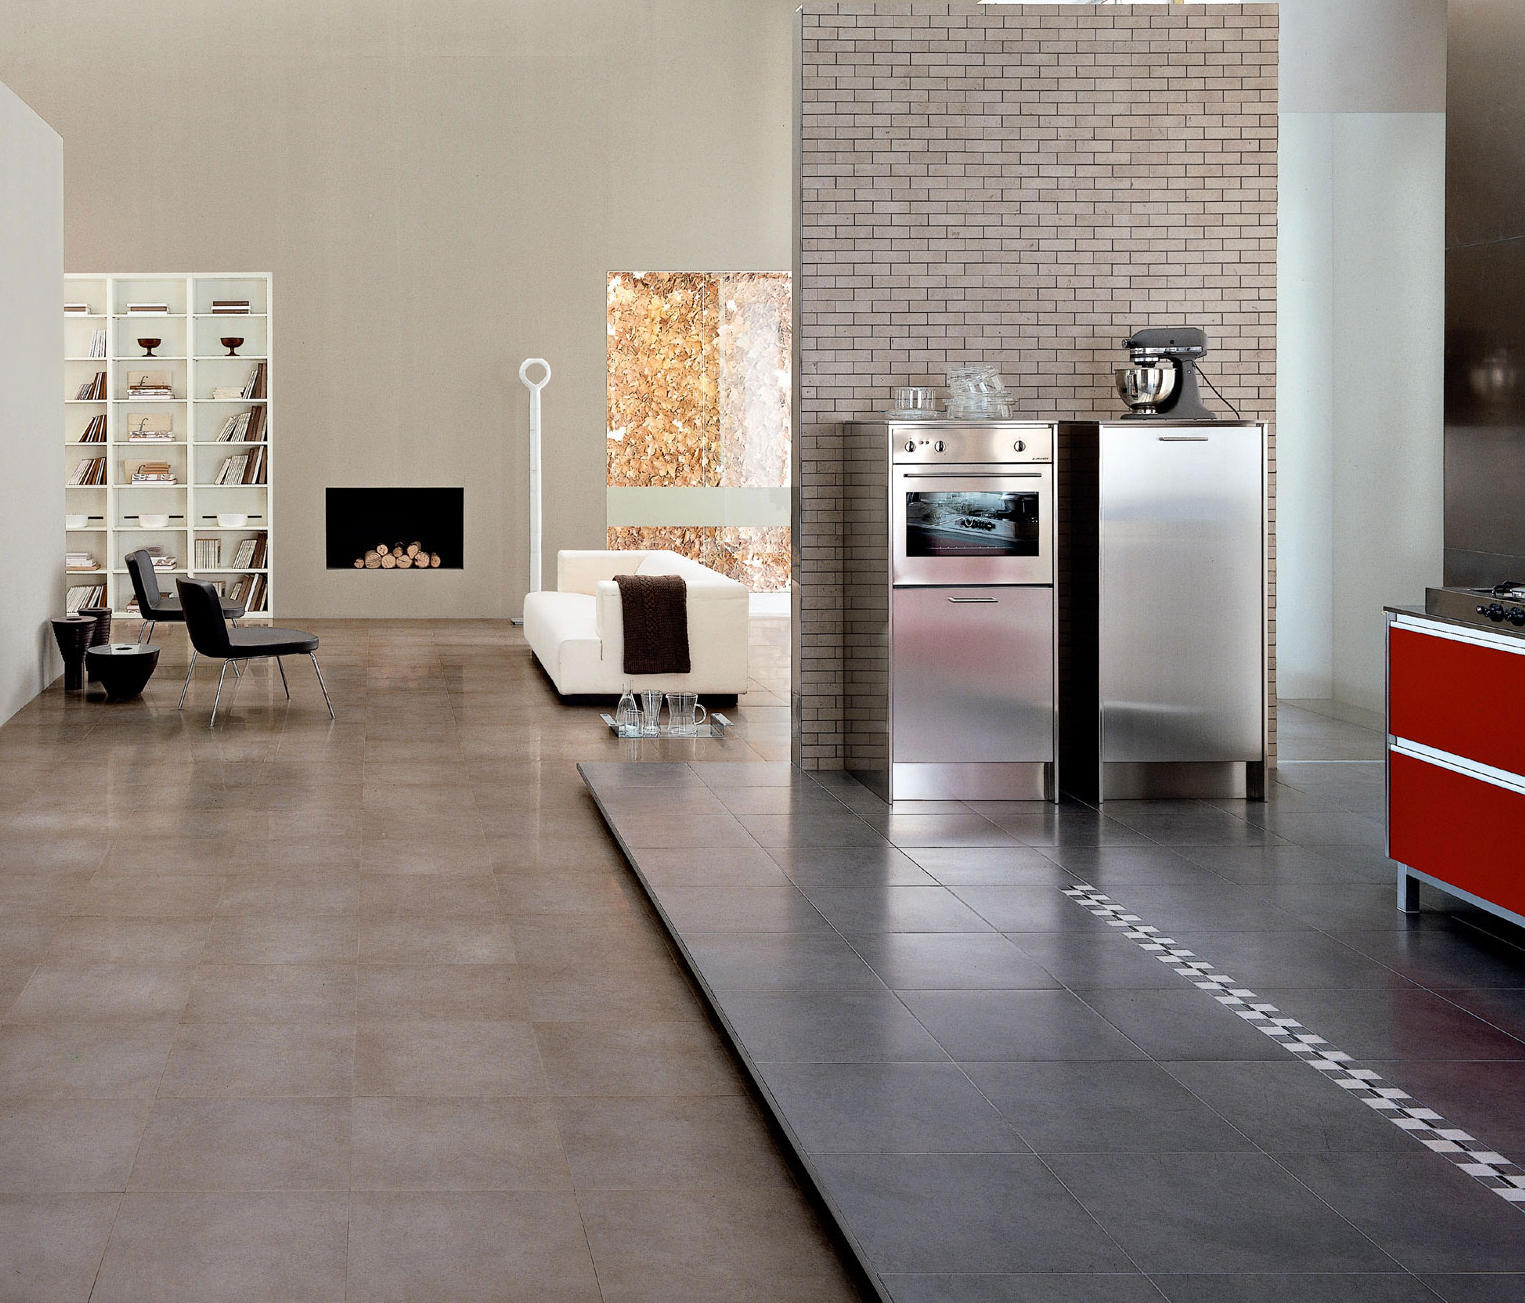 Avantgarde blanc floor tile tiles from refin architonic avantgarde blanc floor tile by refin dailygadgetfo Gallery